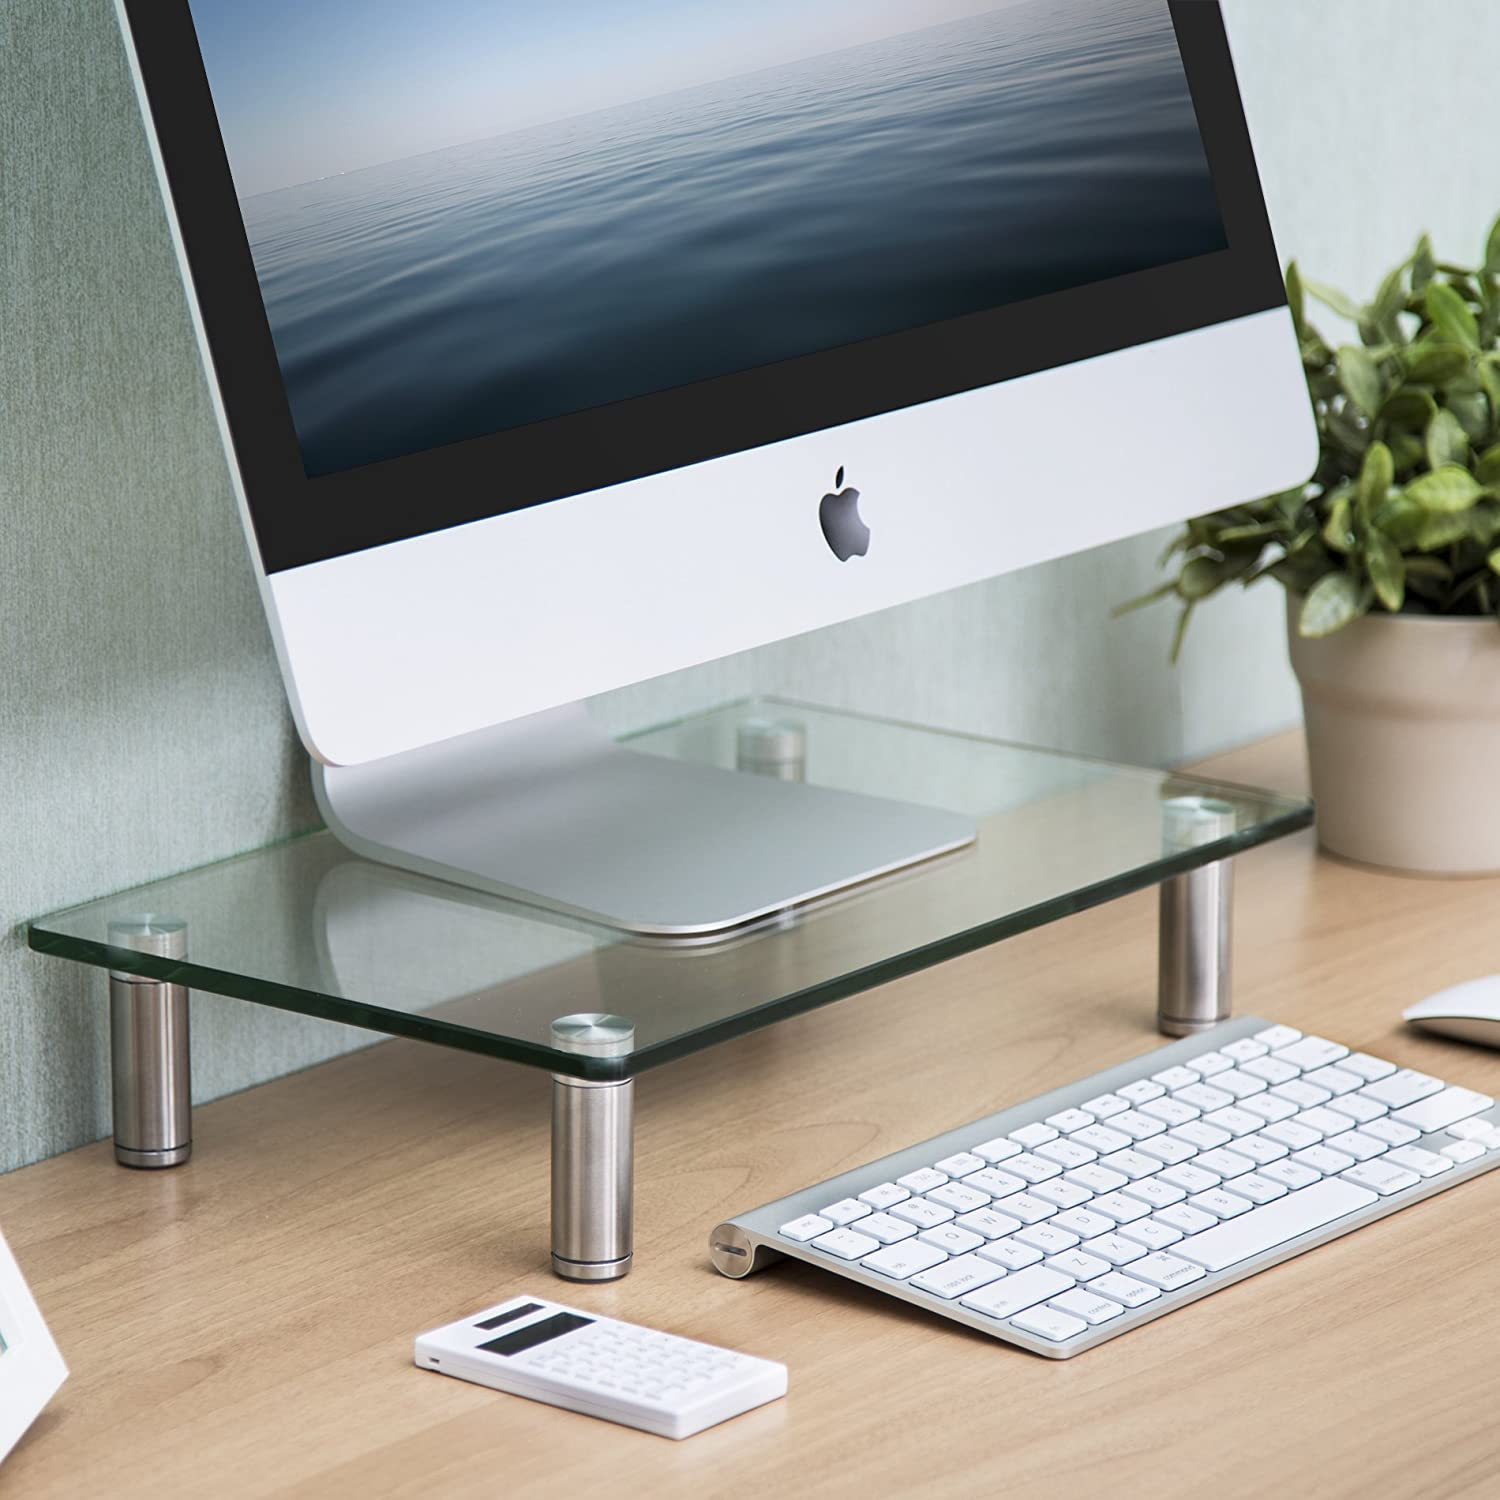 FITUEYES computer Monitor Riser-7 things to make people healthy in the workplace